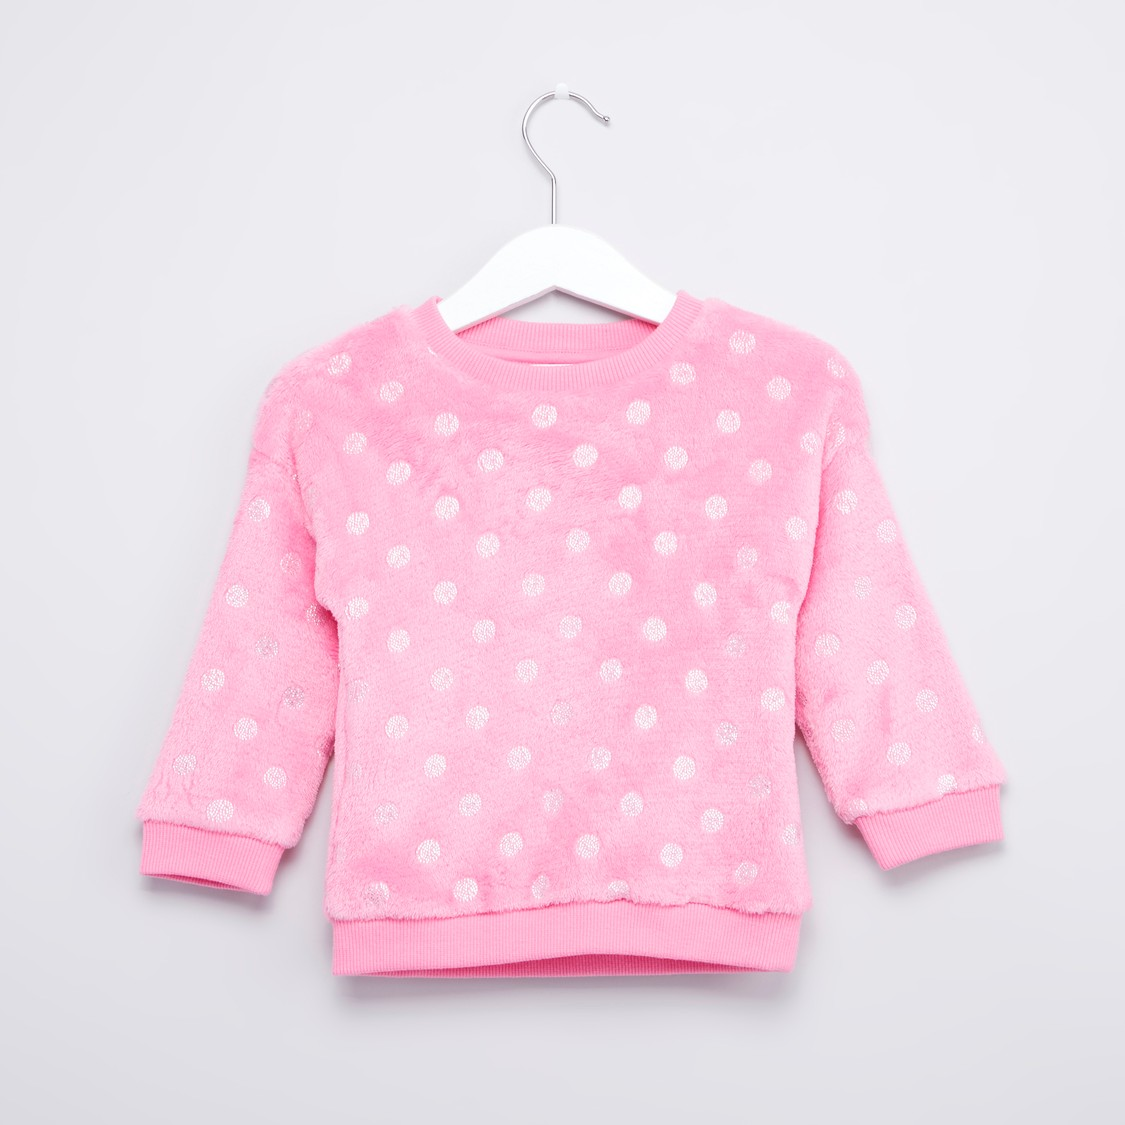 Polka Dot Printed Sweat Top with Long Sleeves